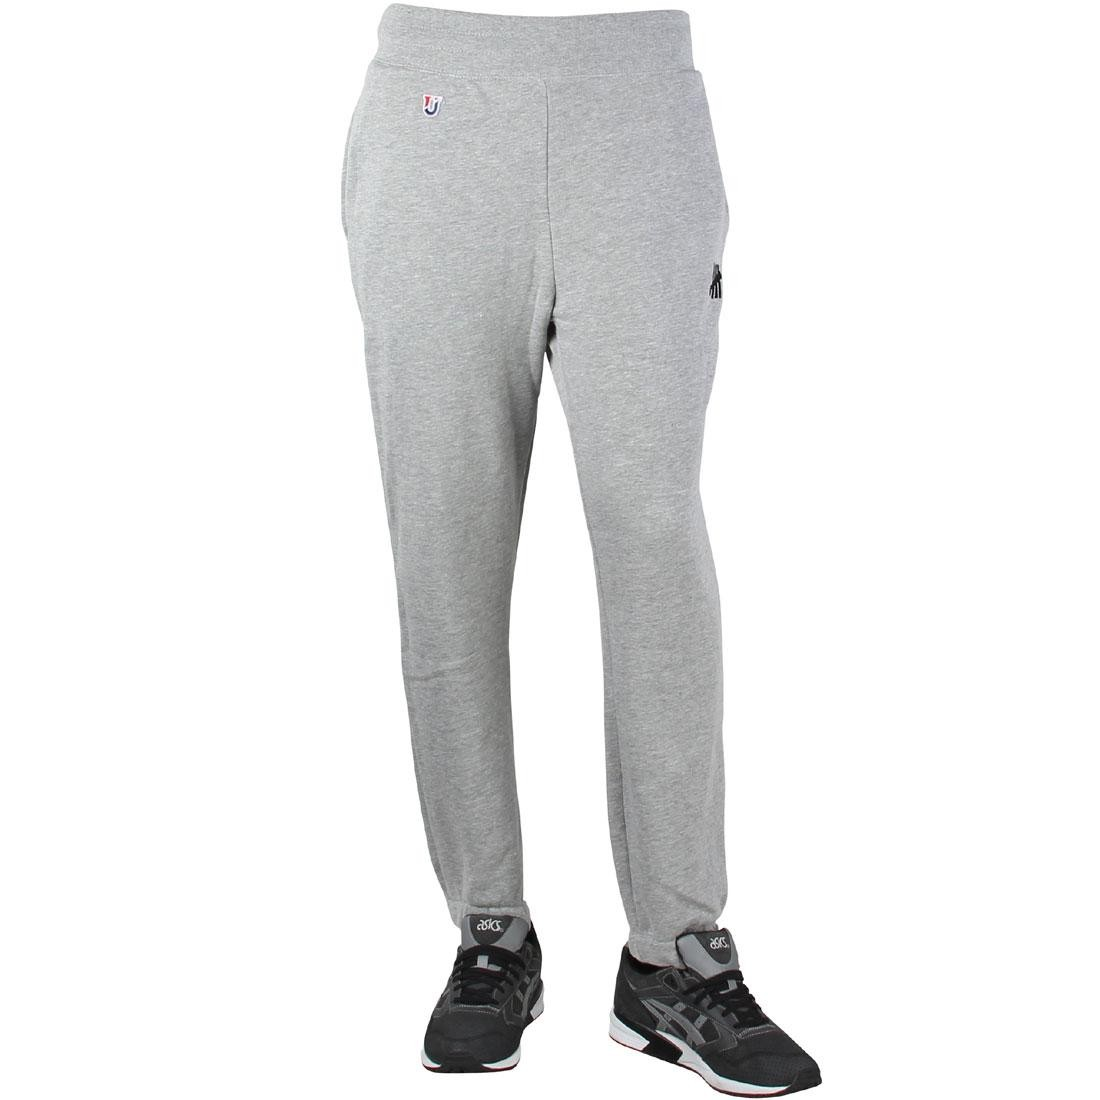 Undefeated Men 5 Strike Sweatpants - Holiday 2015 (gray / heather)